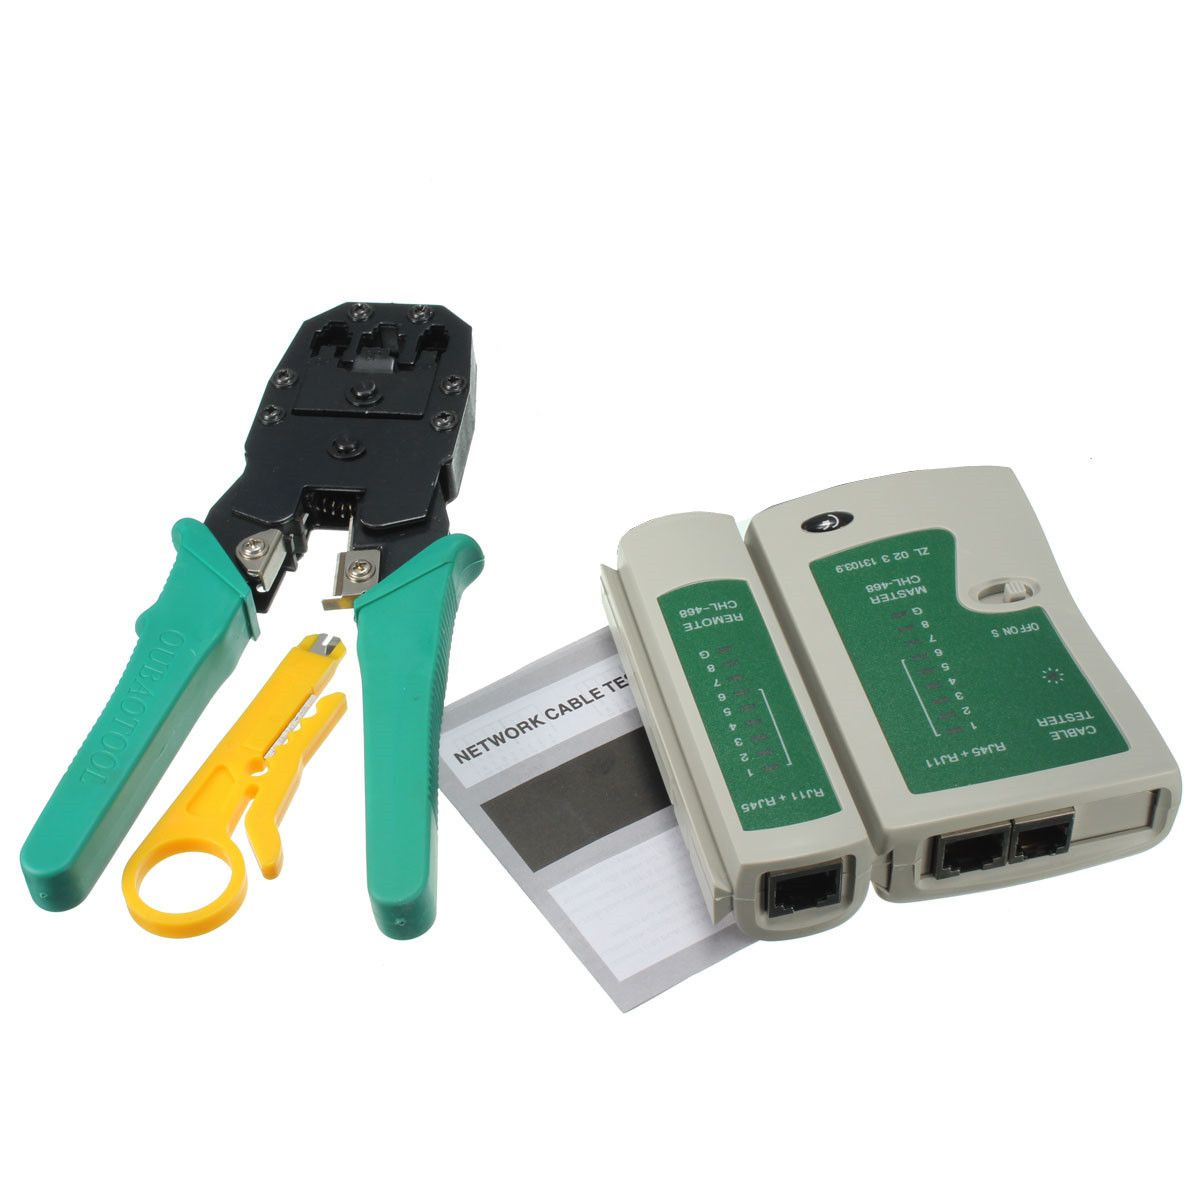 DANIU RJ45 RJ11 RJ12 CAT5 LAN Network Tool Kit Cable Tester Crimp ...